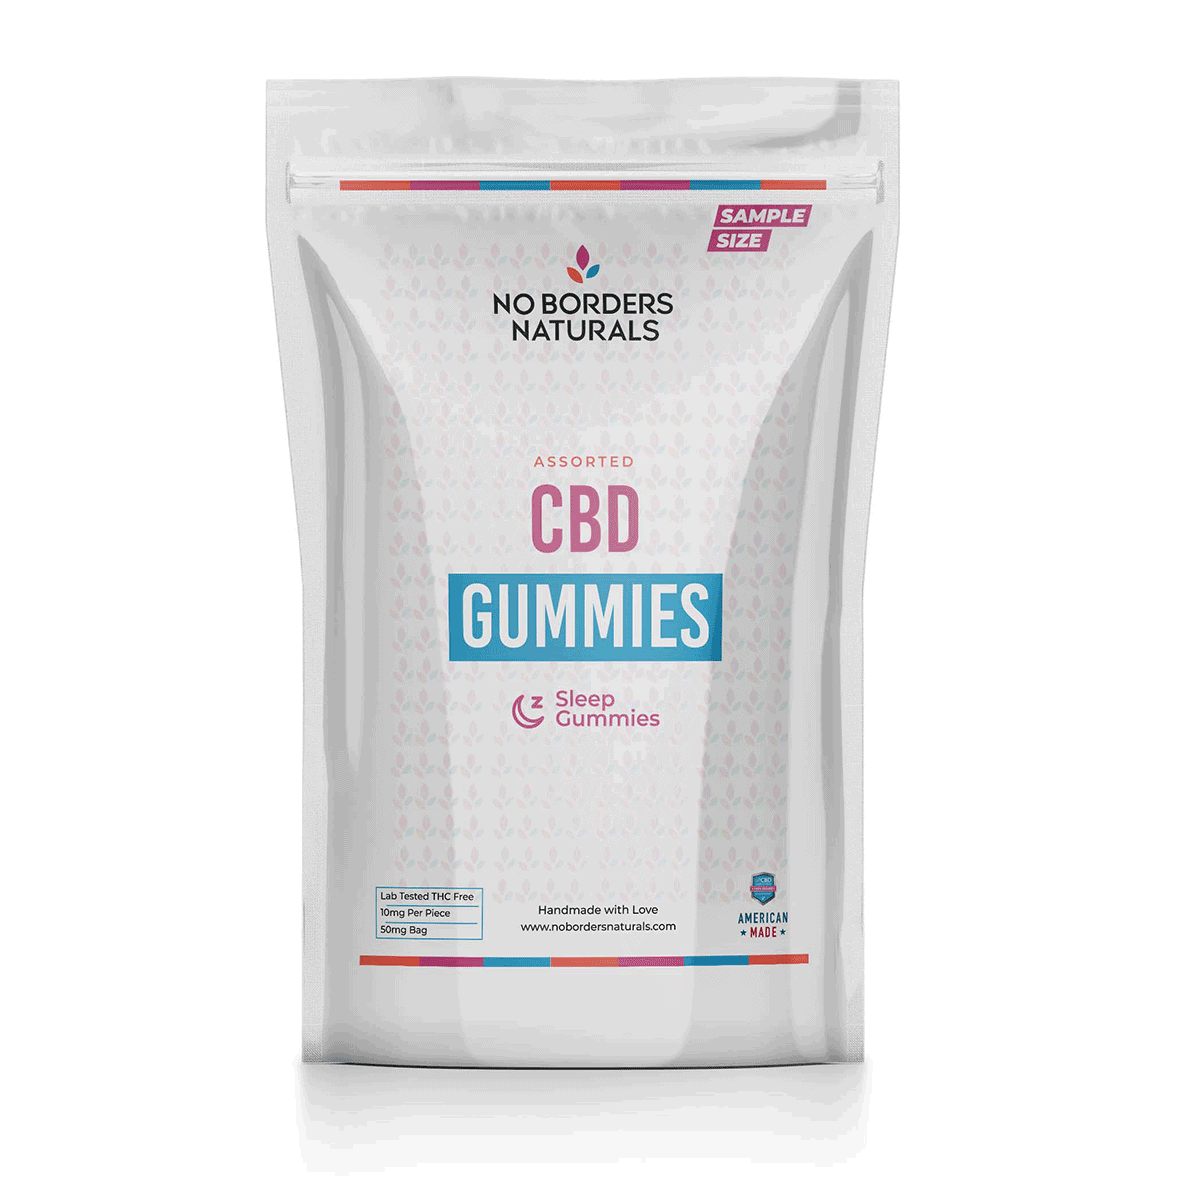 No Borders Naturals 20% Off CBD Gummies Coupon